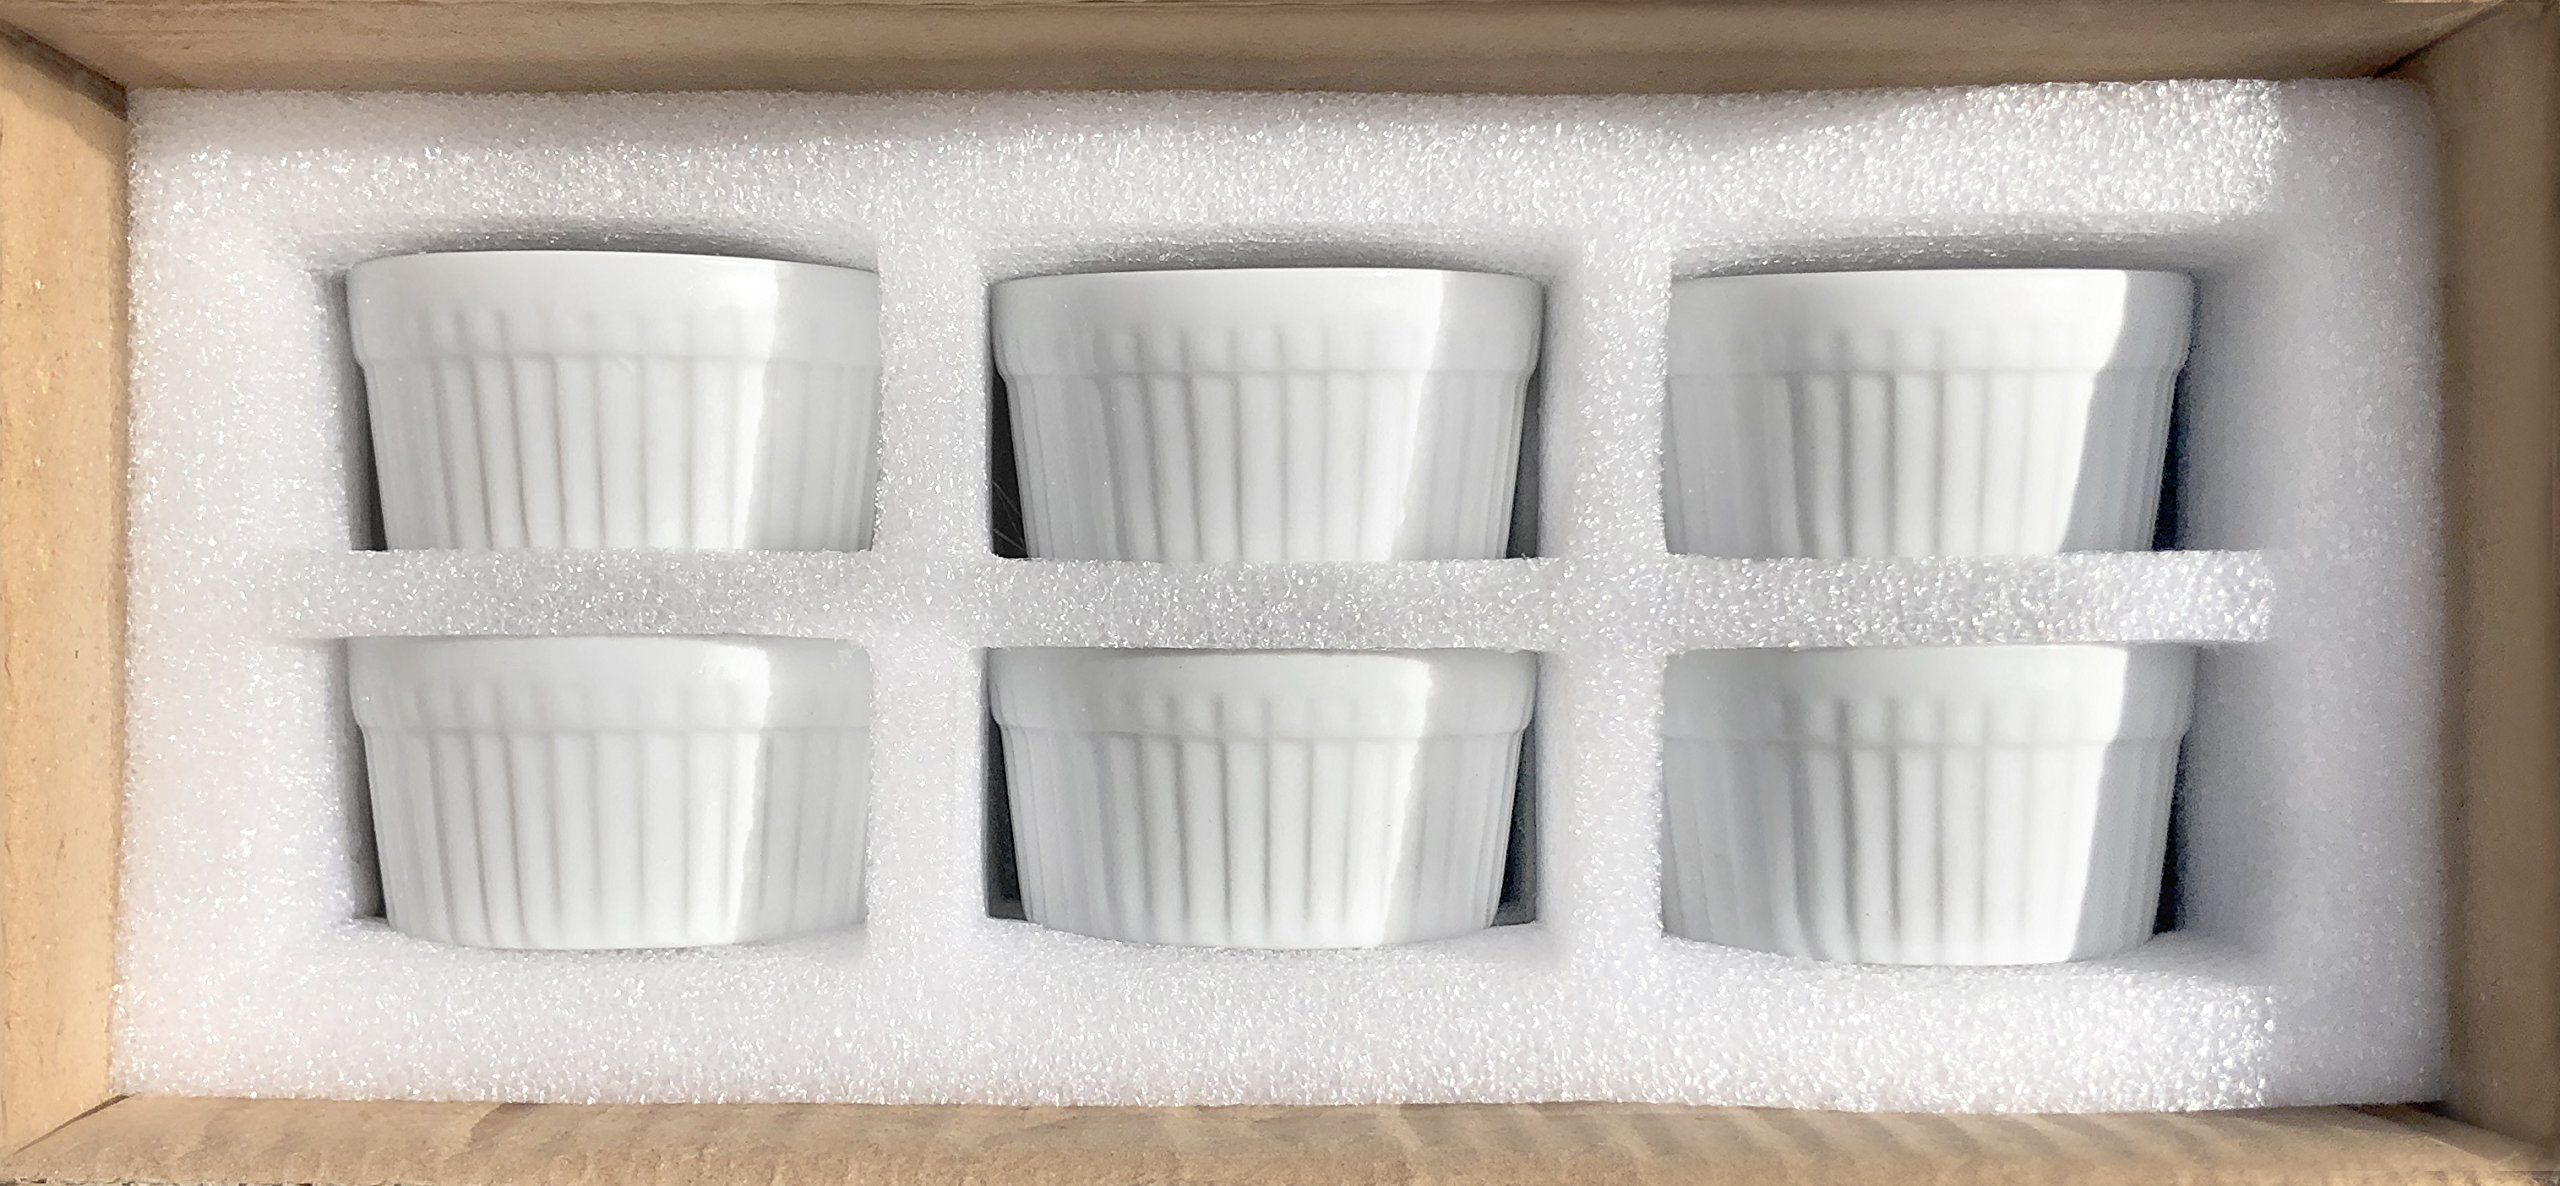 Furmaware White Porcelain 3oz Ramekins Set: 6-Piece Baking & Serving Individual Ramekin Bowls| Sturdy & Classy No Odor & Easy To Clean Ramekin Cups| Decorative Soufflé, Sauce, Dressing & Dip Ramekins